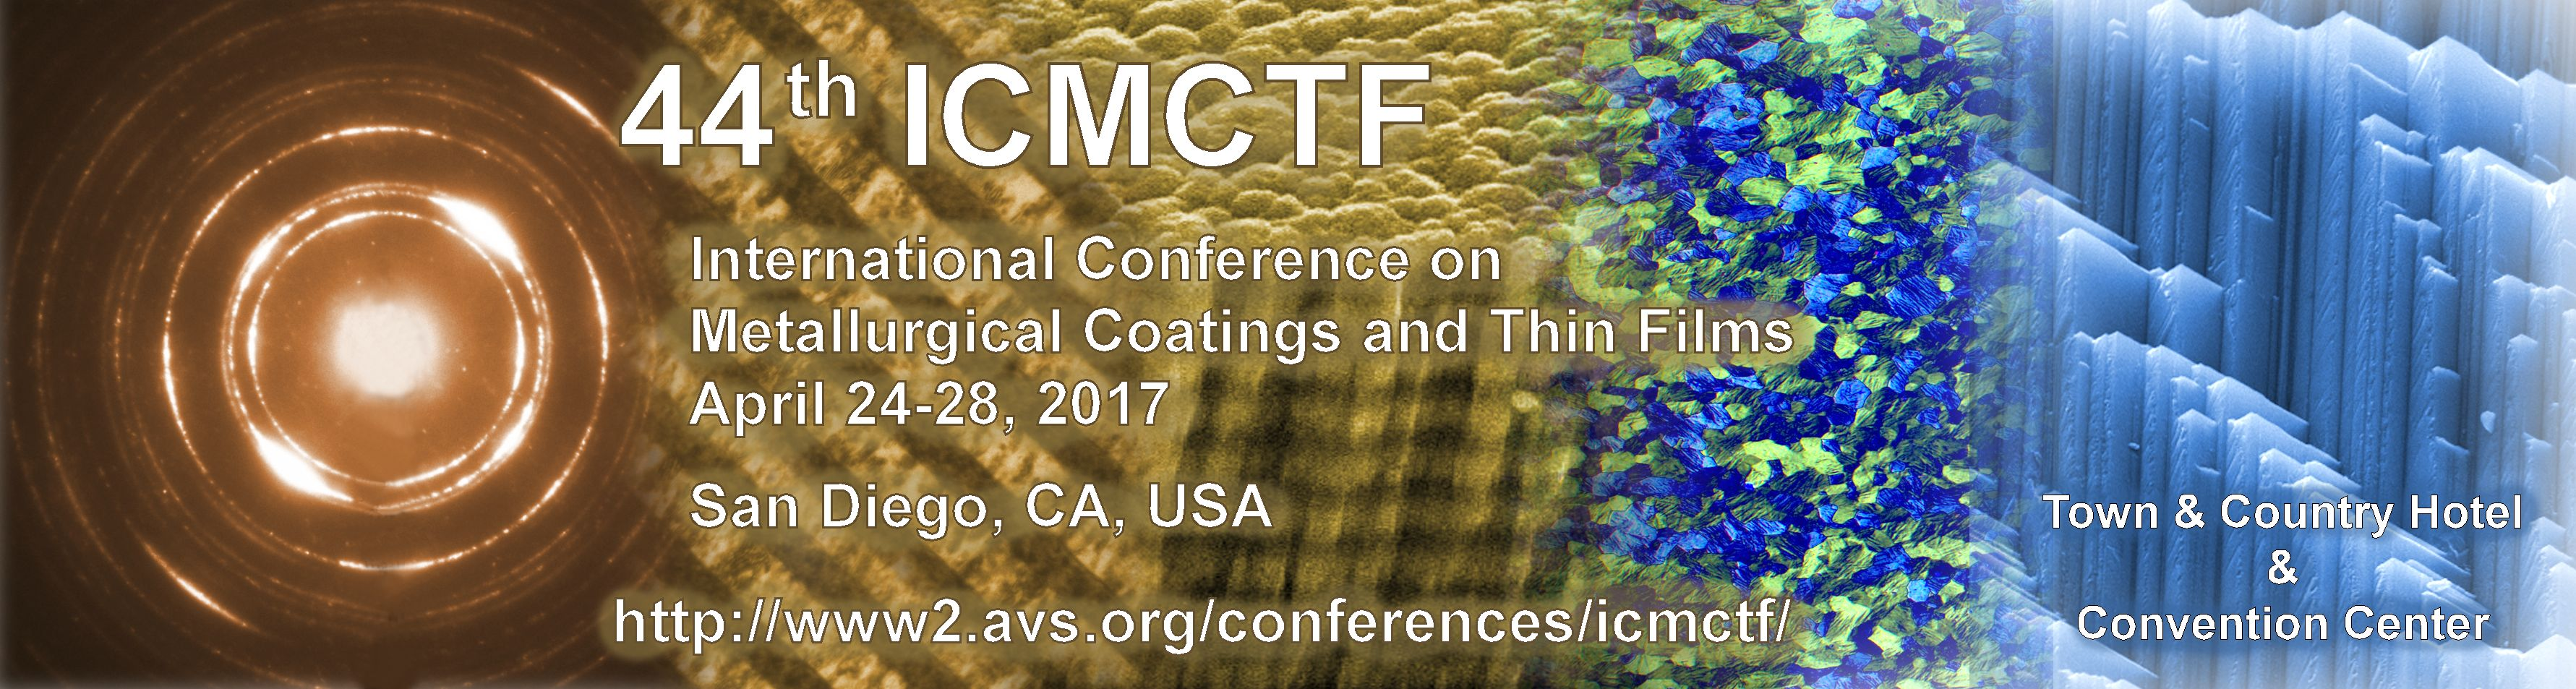 44th Int. Conf. on Metallurgical Coatings and Thin Films